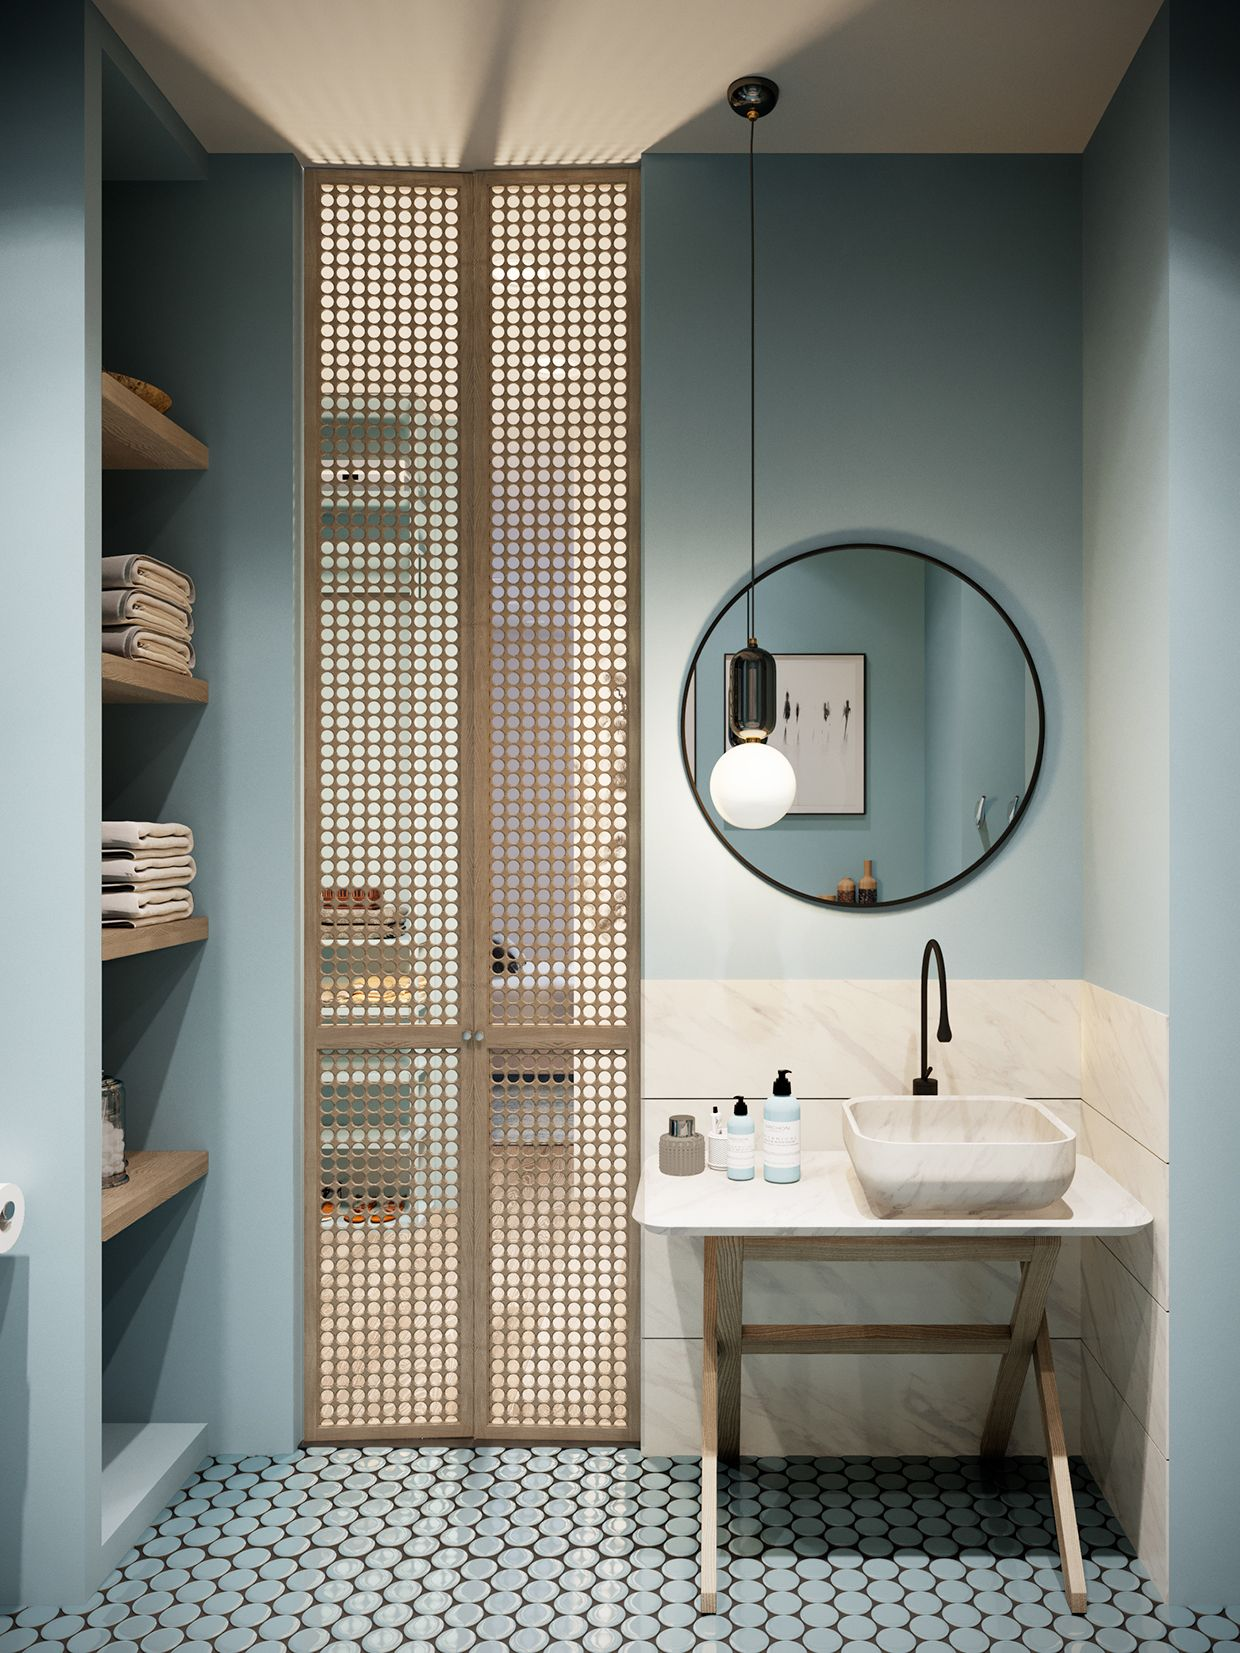 Simple house interior bathroom porte et lumiere naturelle ajourée  hotels  pinterest  interiors